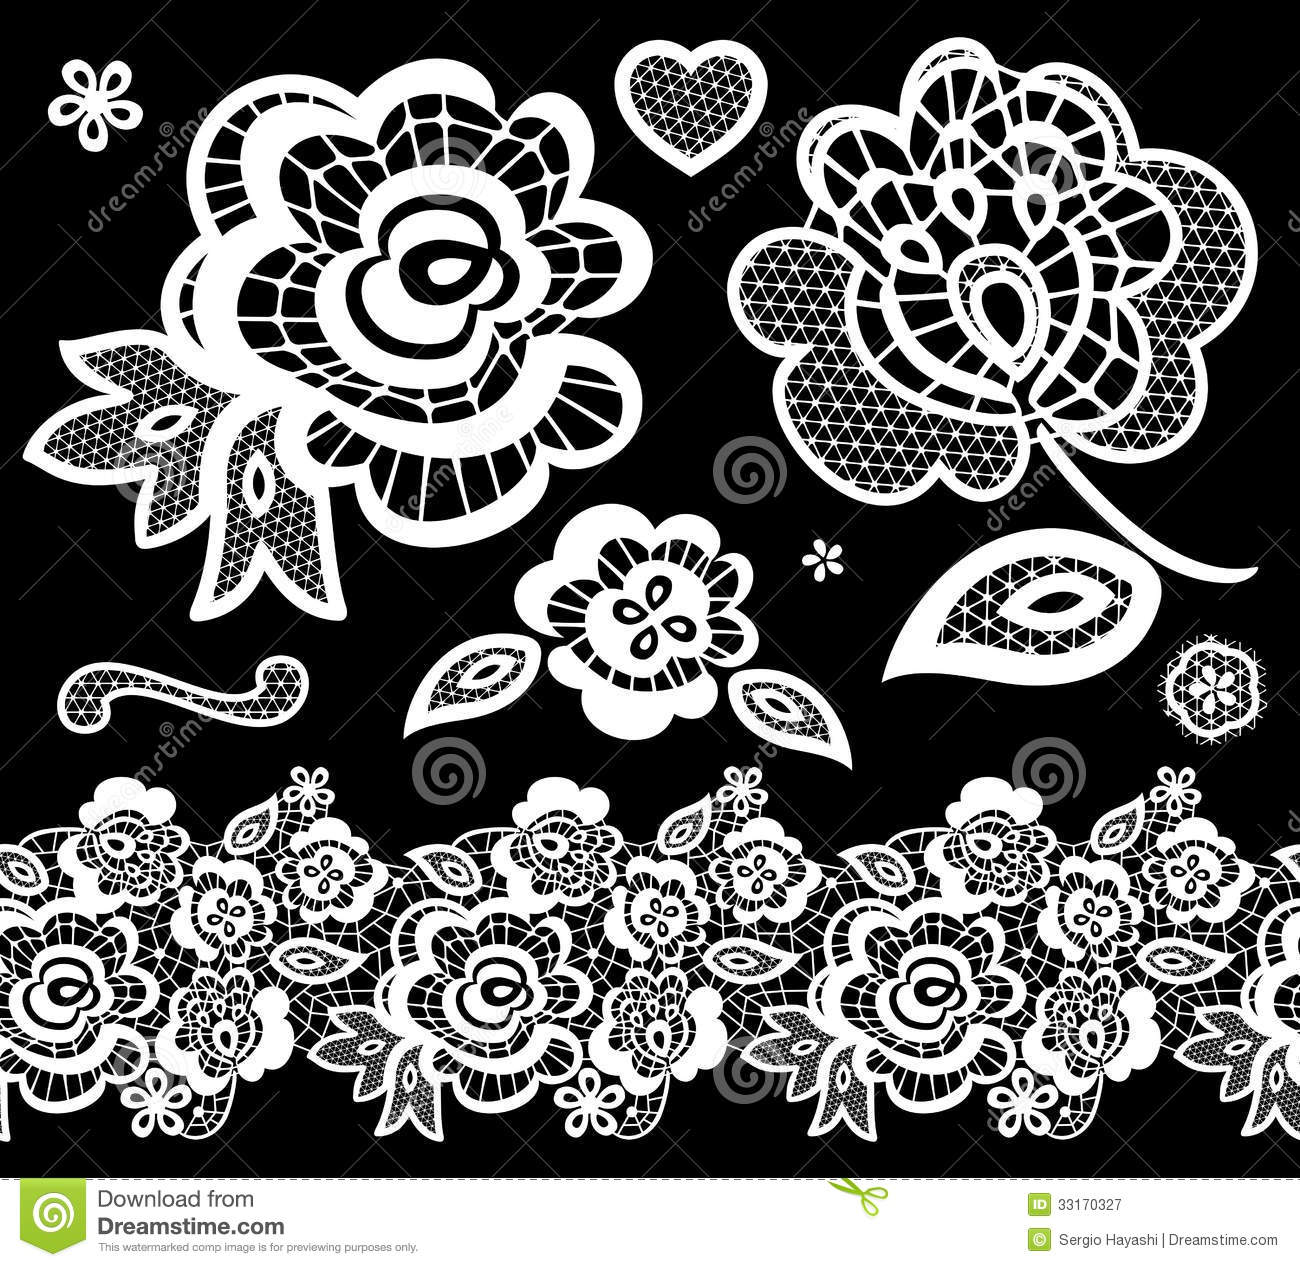 Lace Embroidery Design Elements Royalty Free Stock